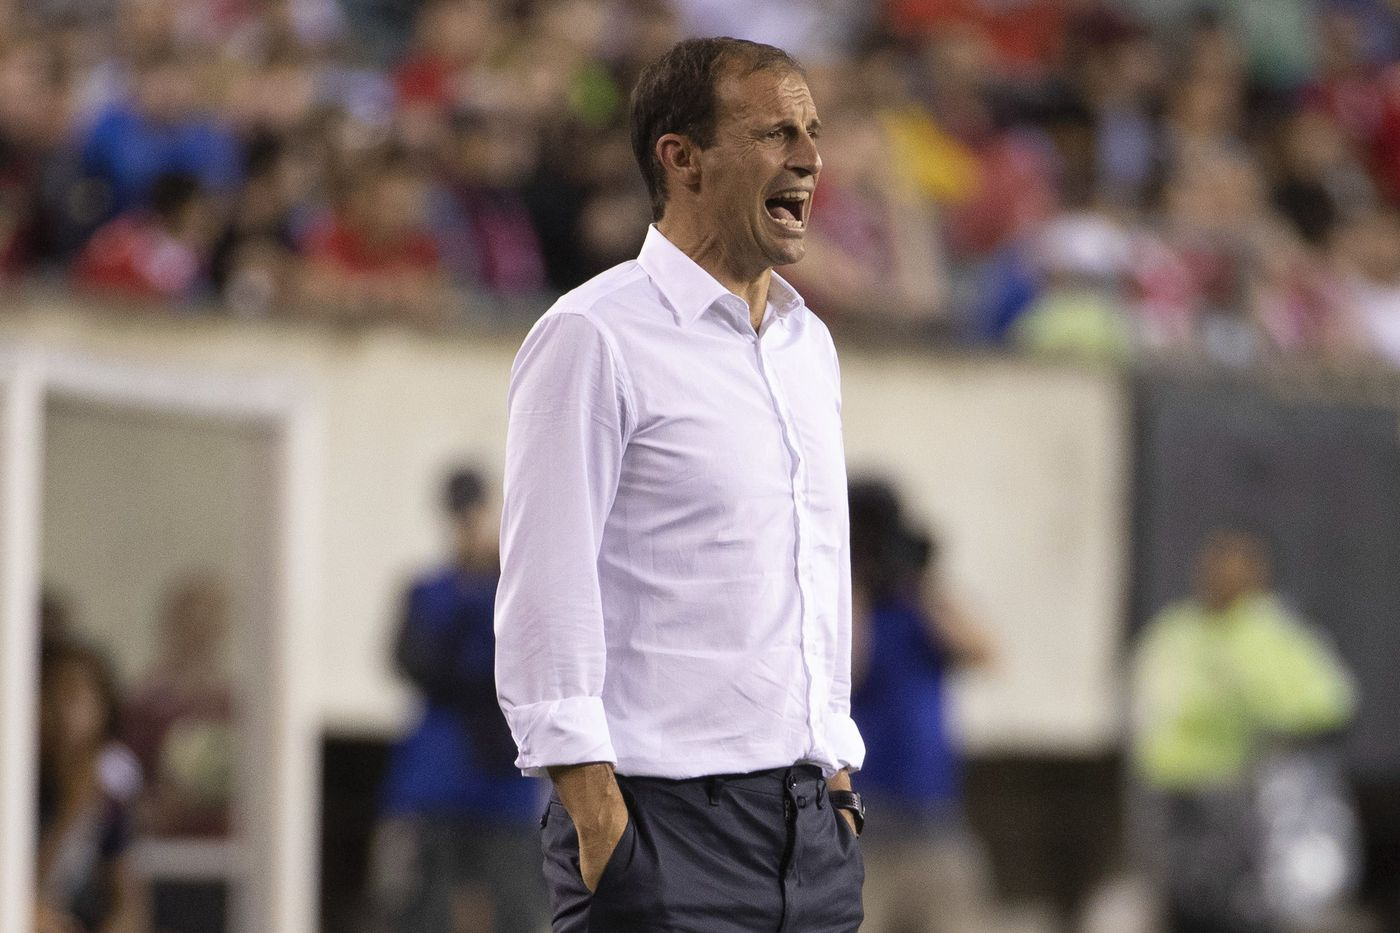 Juventus-Bayern Munich match an escape for Massimiliano Allegri, a homecoming for Chris Richards